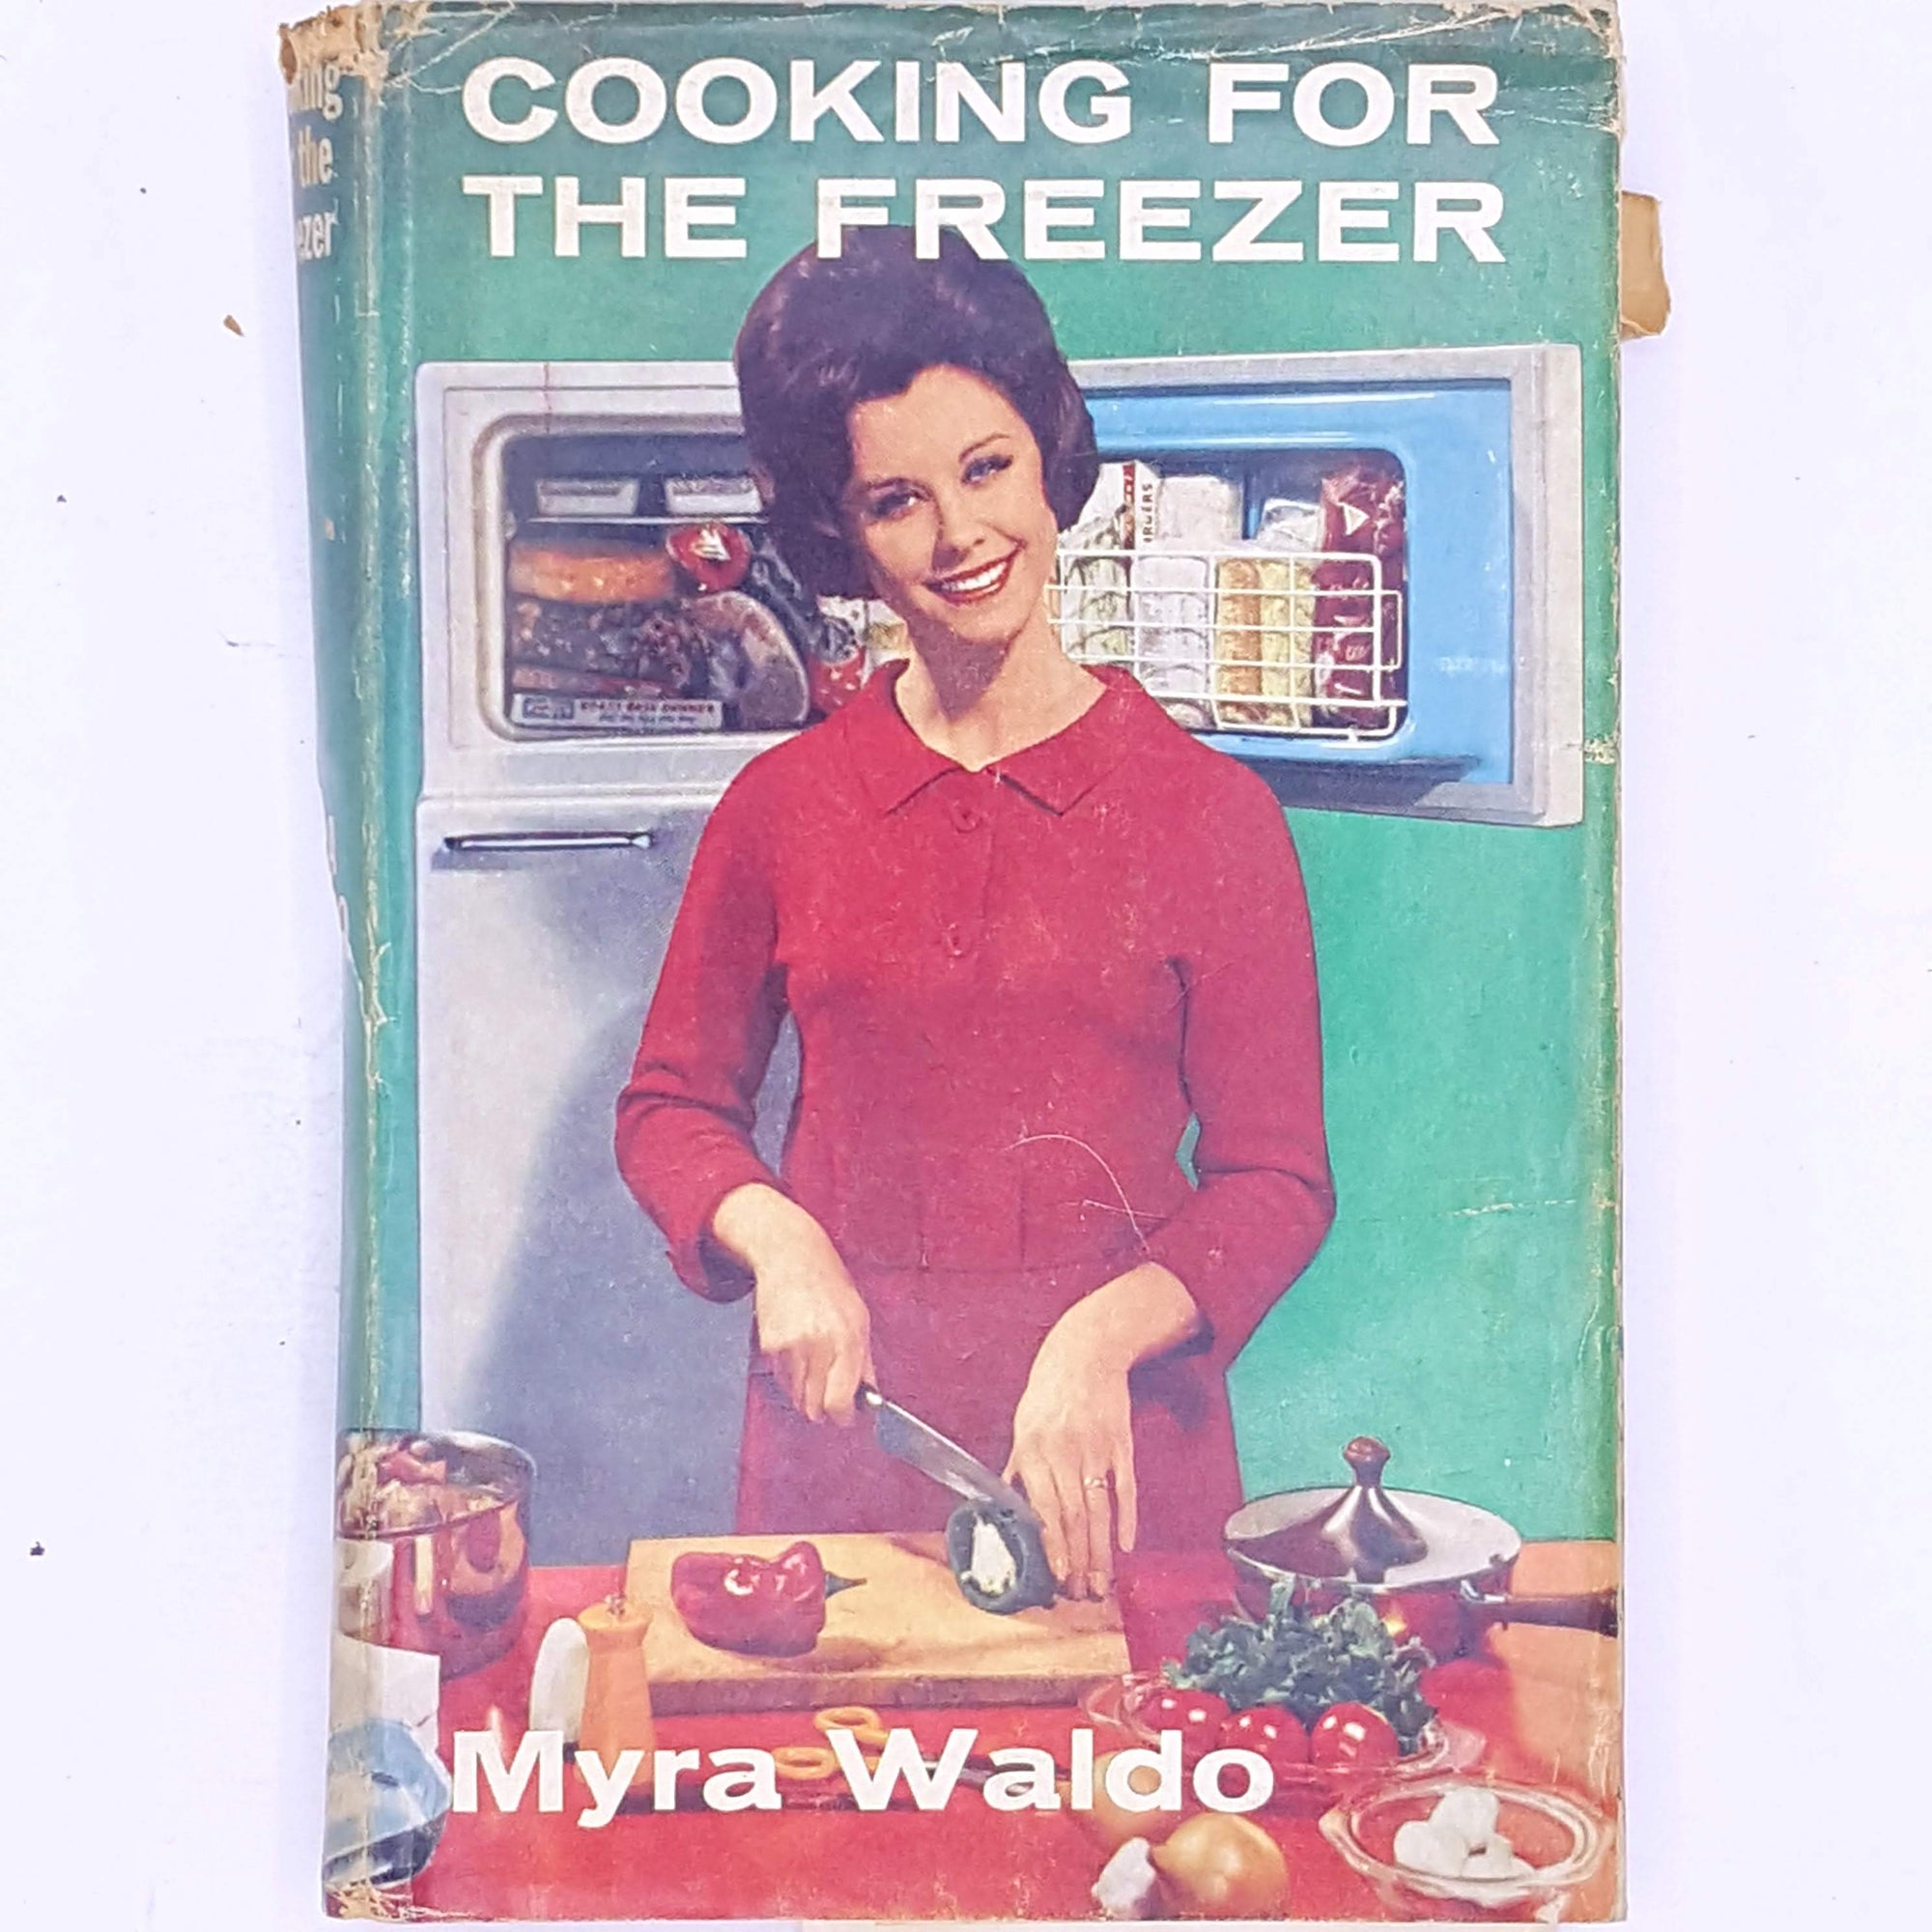 books-cookbook-cooking-for-the-freezer-myra-waldo-skills-gifts-cookbooks-cooking-recipes-antique-thrift-hobbies-classic-old-vintage-baking- country-house-library-for-foodies-food-decorative-patterned-